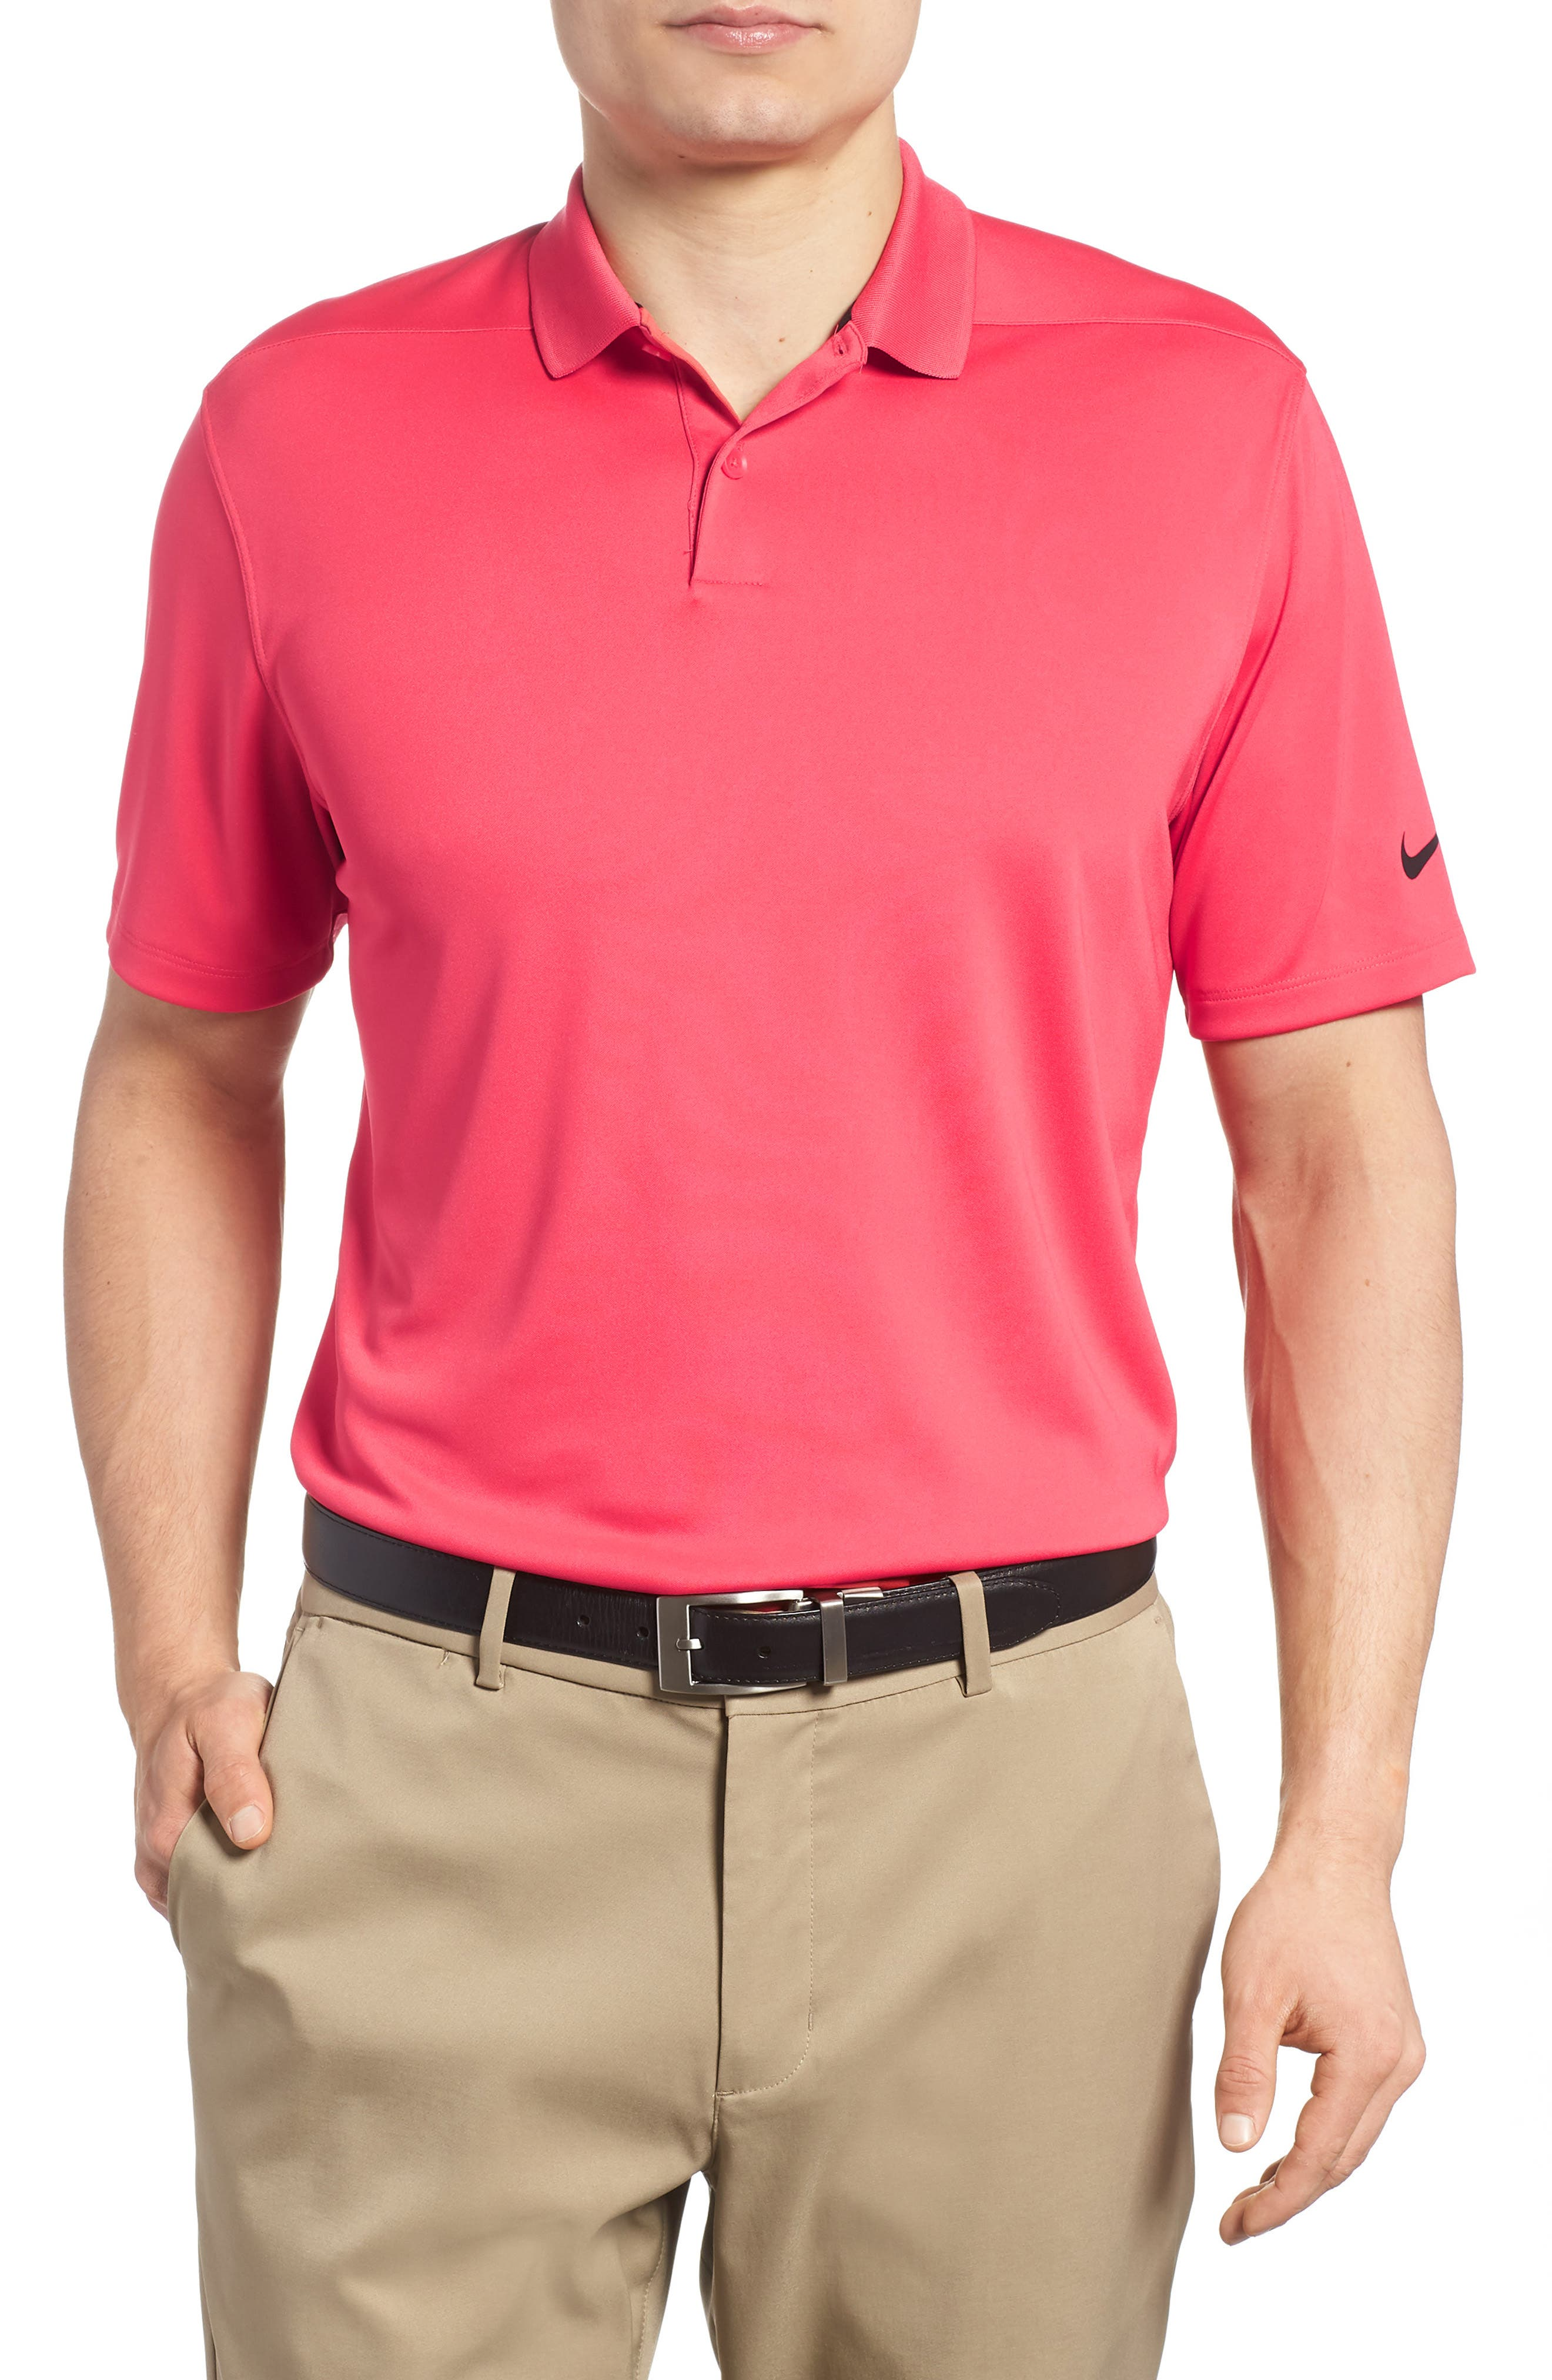 Dry Victory Golf Polo,                             Main thumbnail 1, color,                             Tropical Pink/ Black